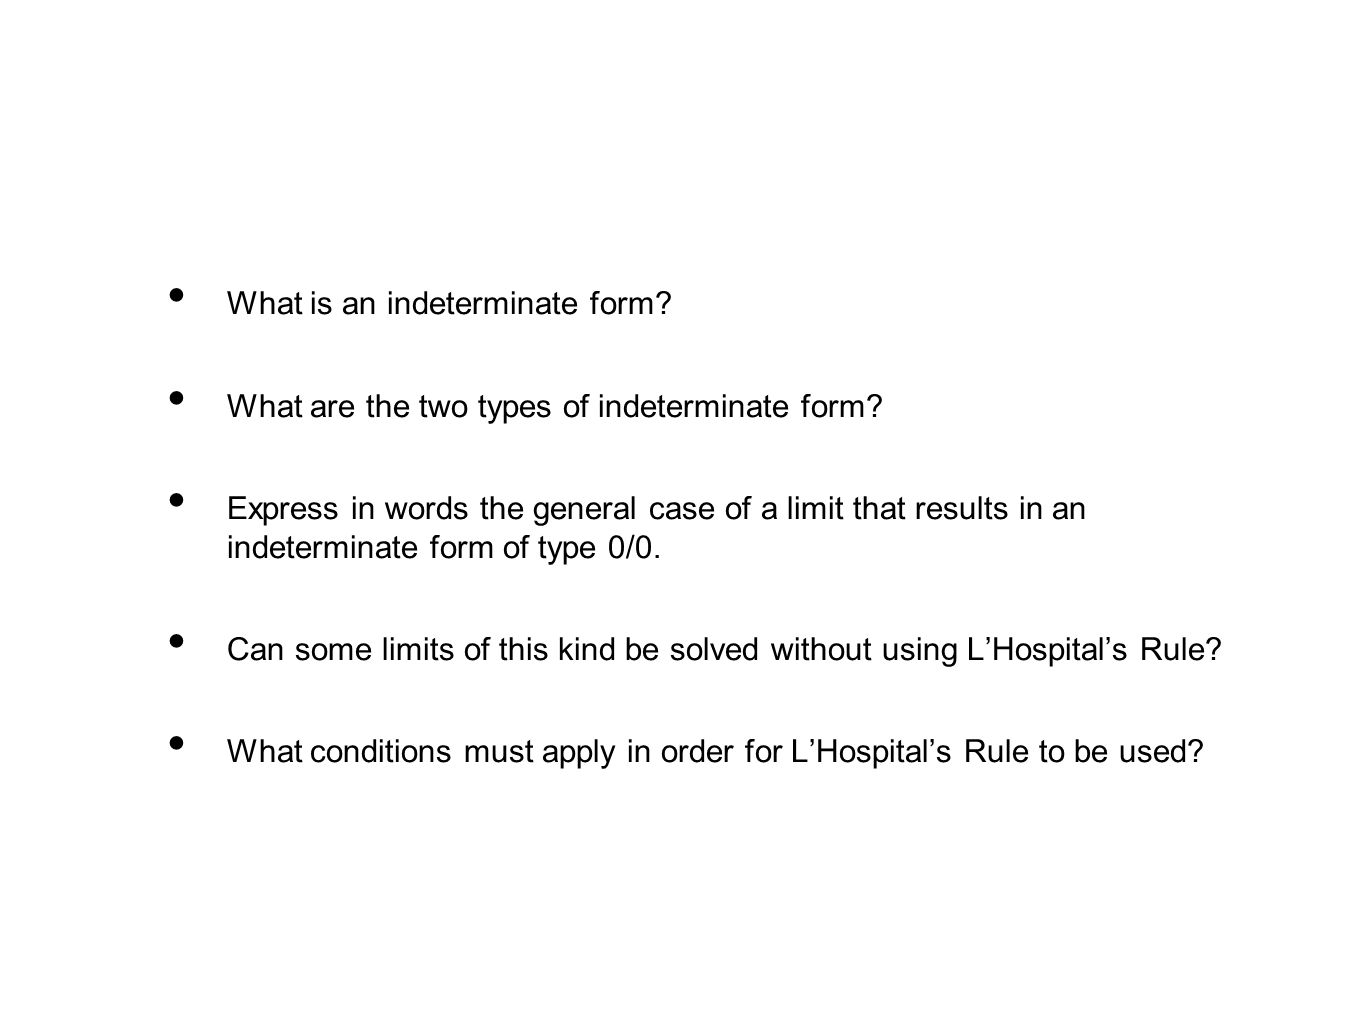 What is an indeterminate form. What are the two types of indeterminate form.